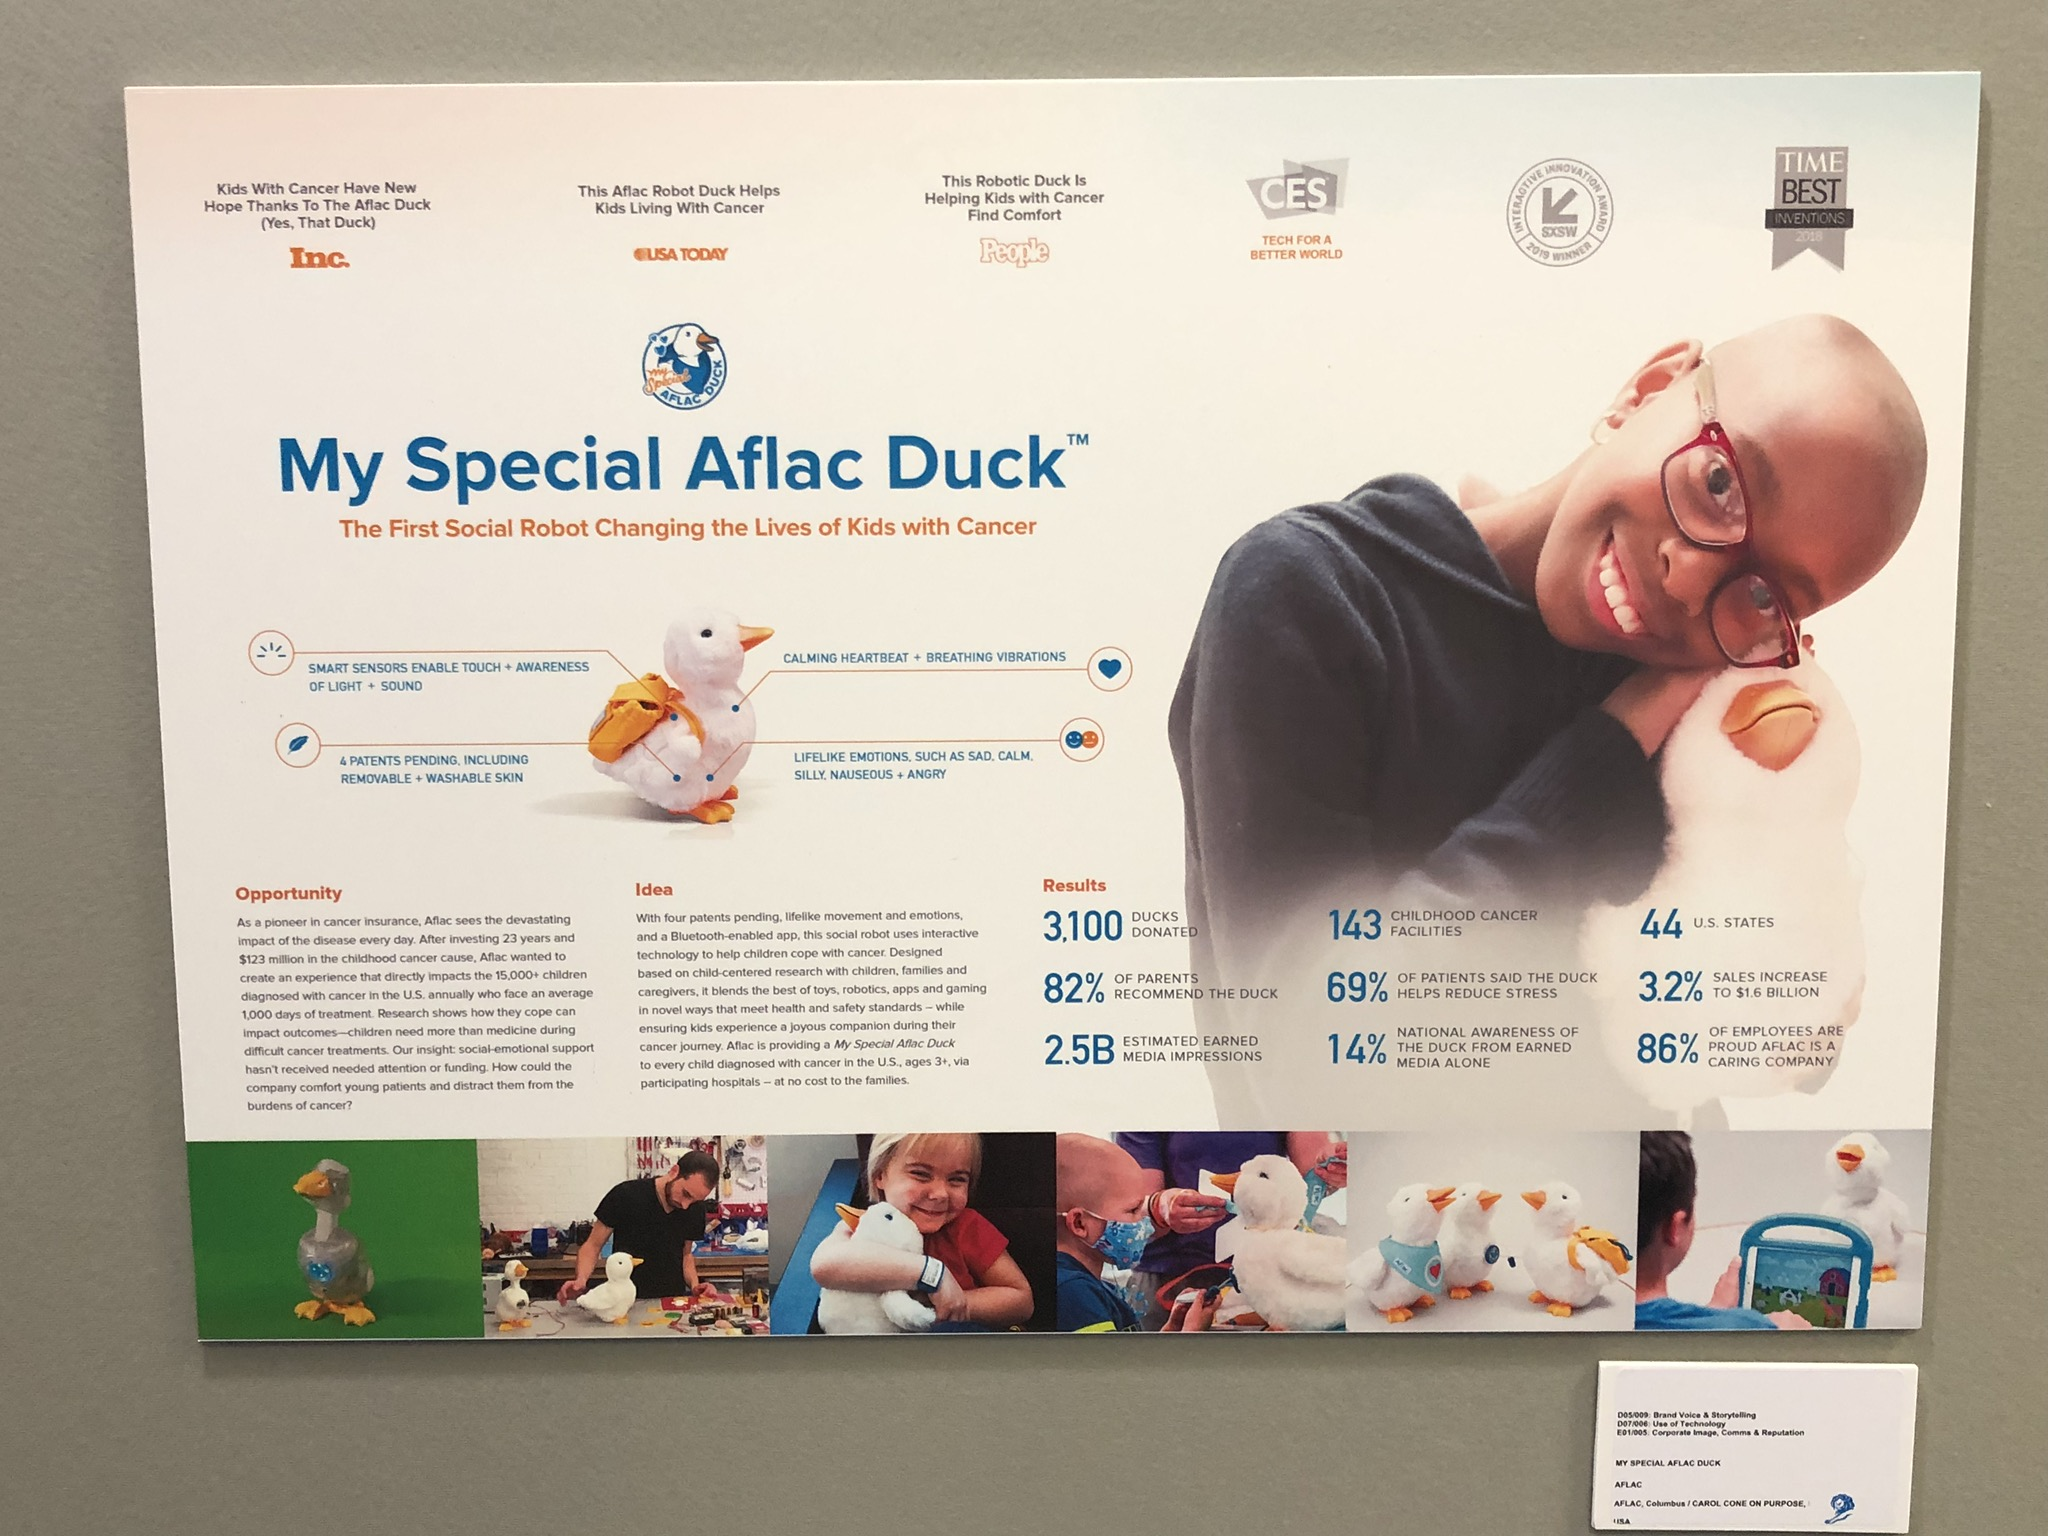 Cannes winner: Aflac duck